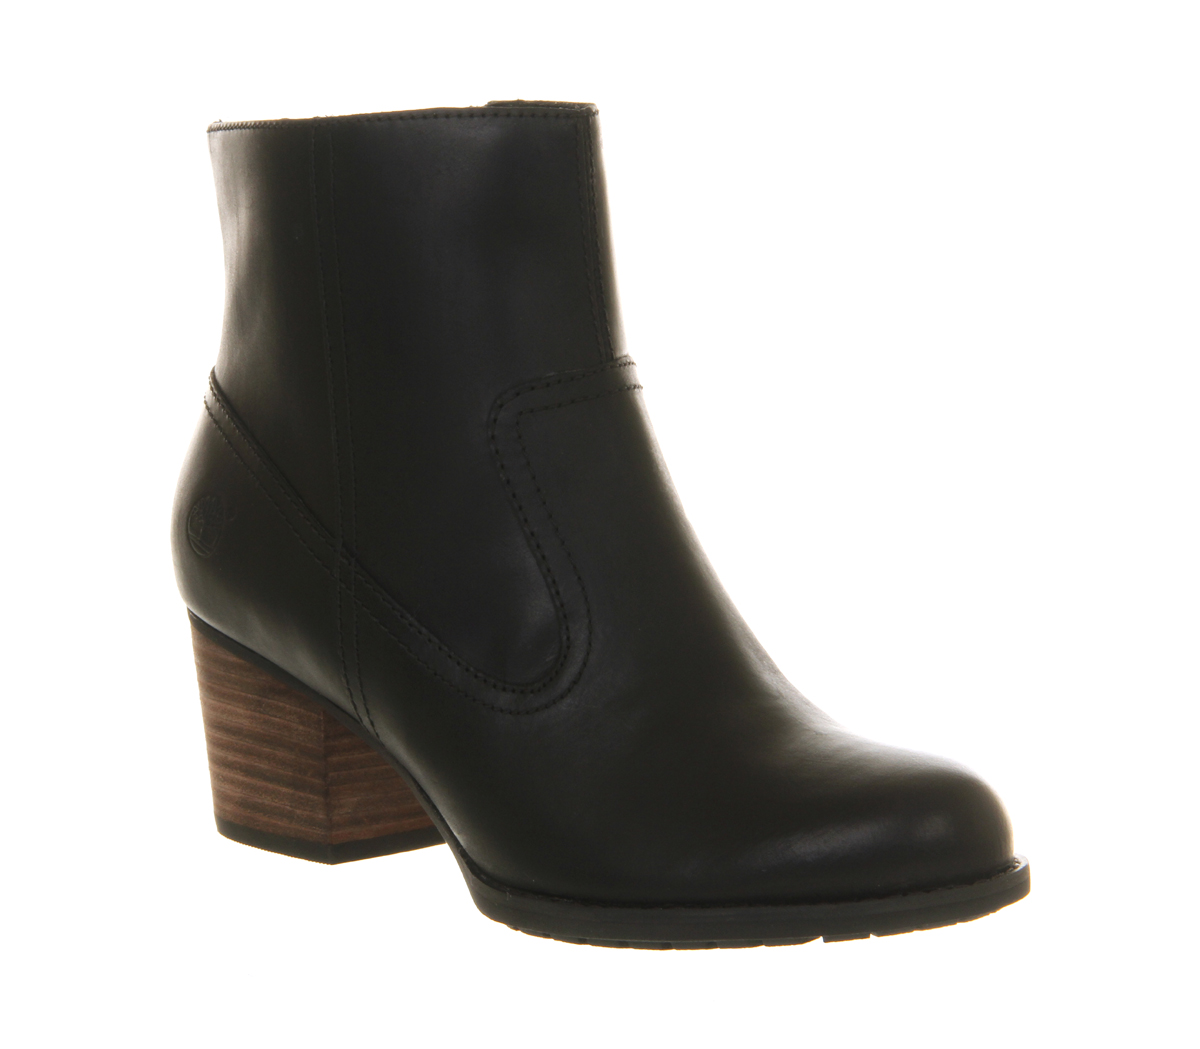 Innovative Clothing Shoes Accessories Gt Women39s Shoes Gt Boots